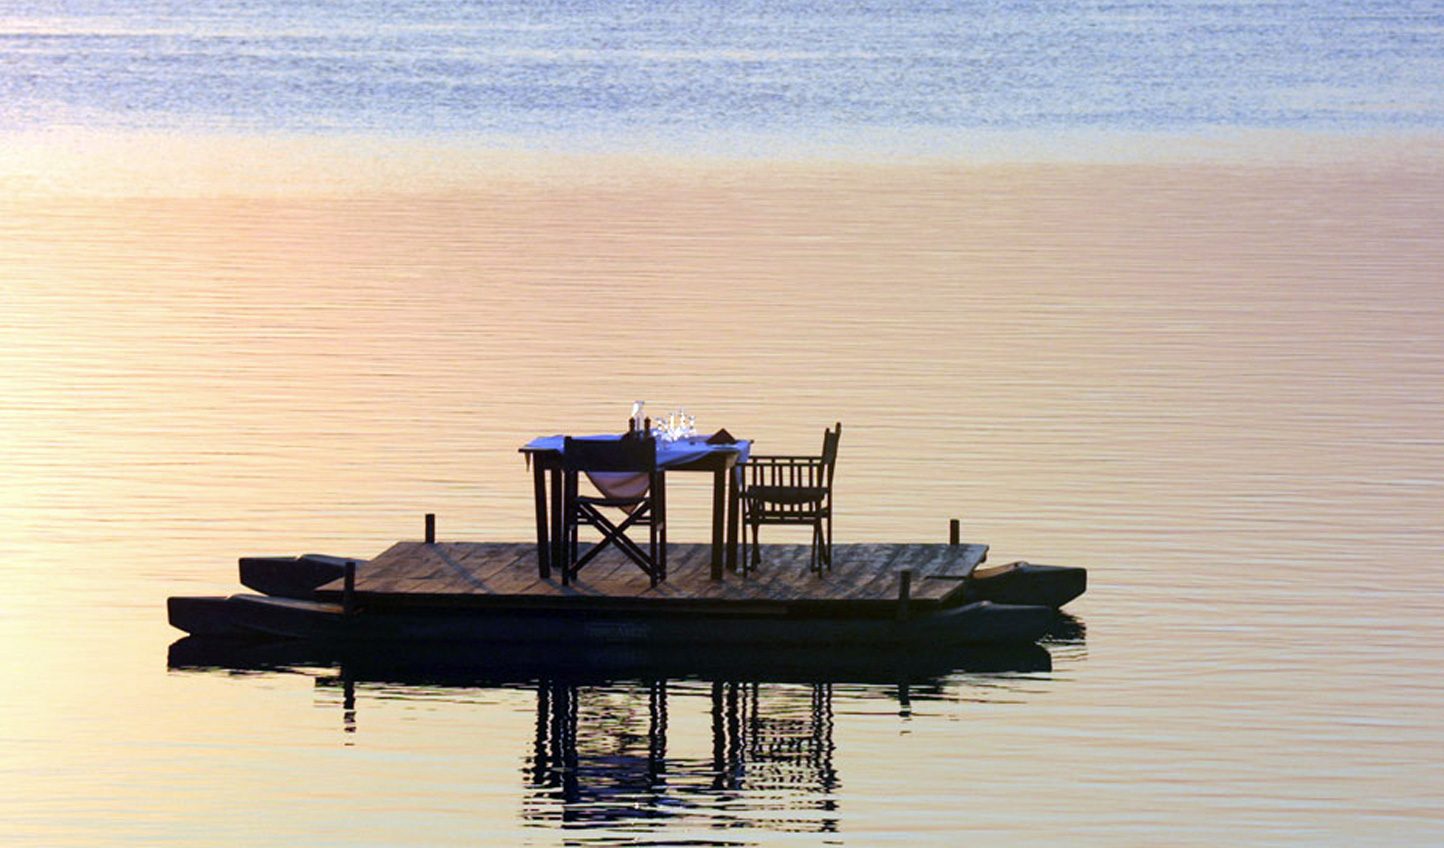 Indulge in a Sampan Dinner in the middle of the Zambezi River